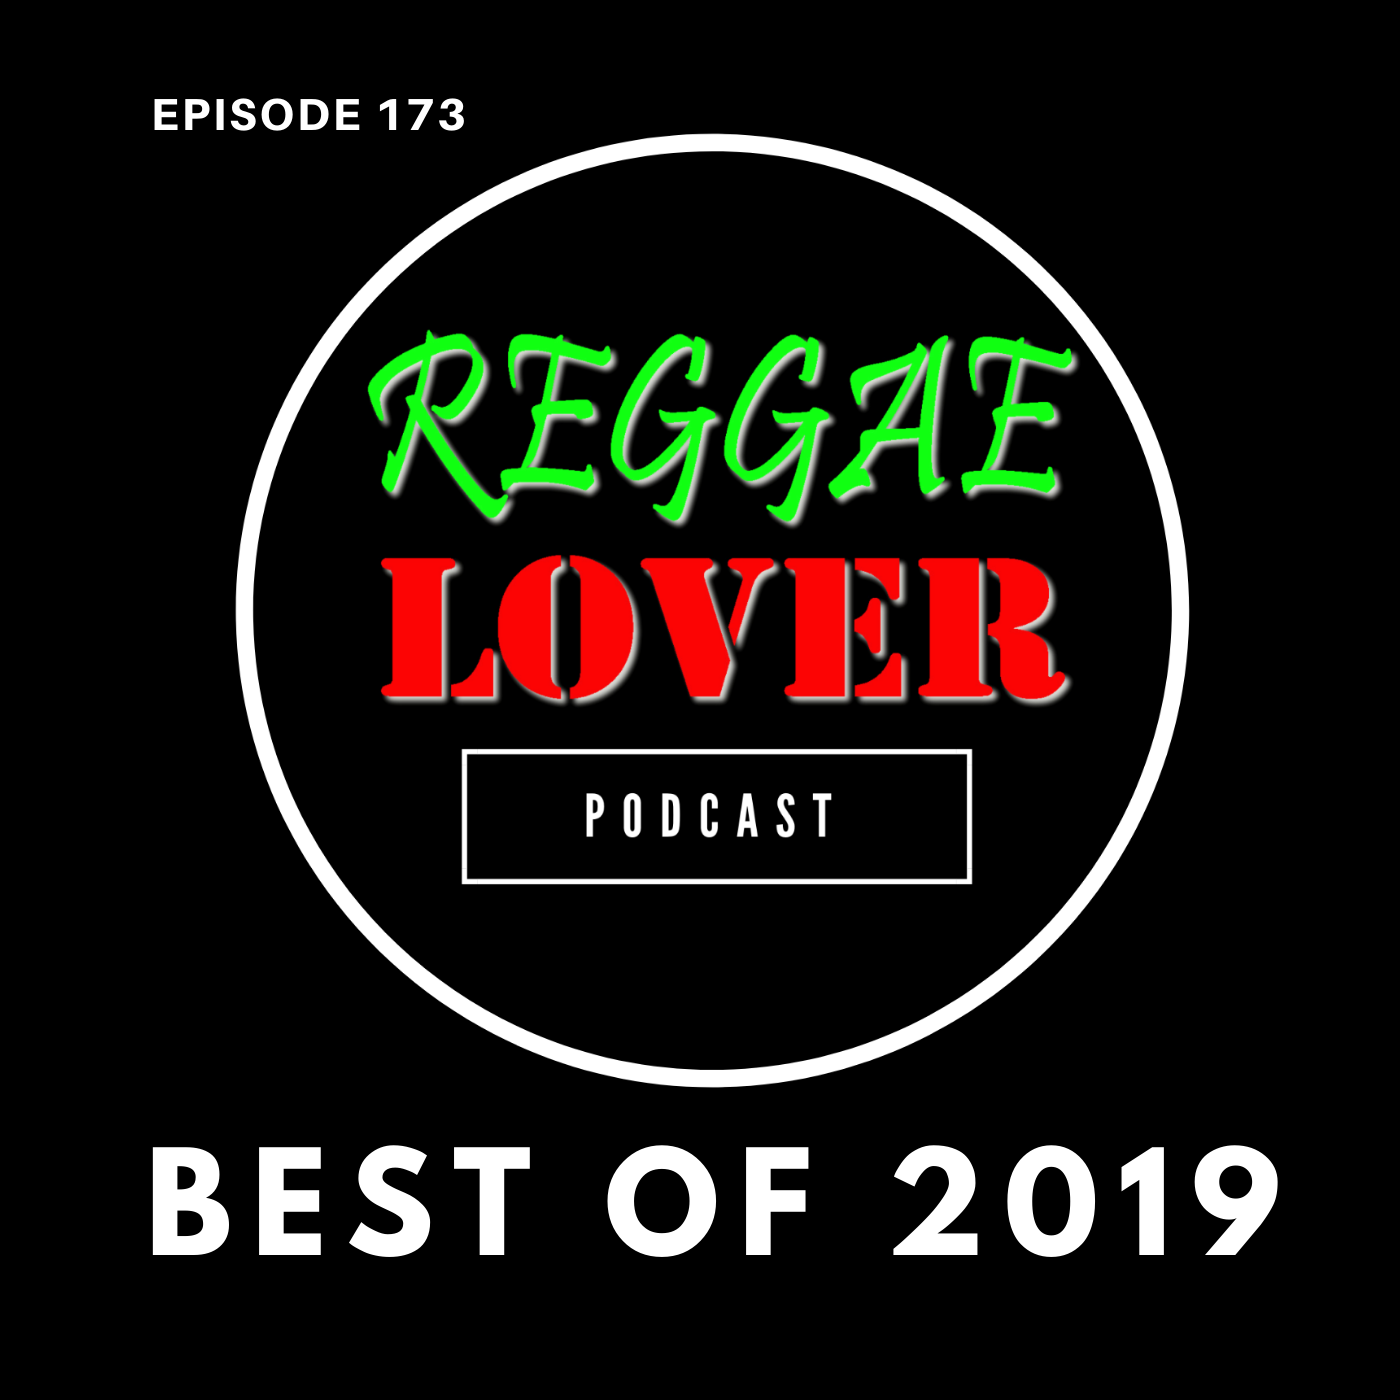 Reggae Lover Podcast 2020